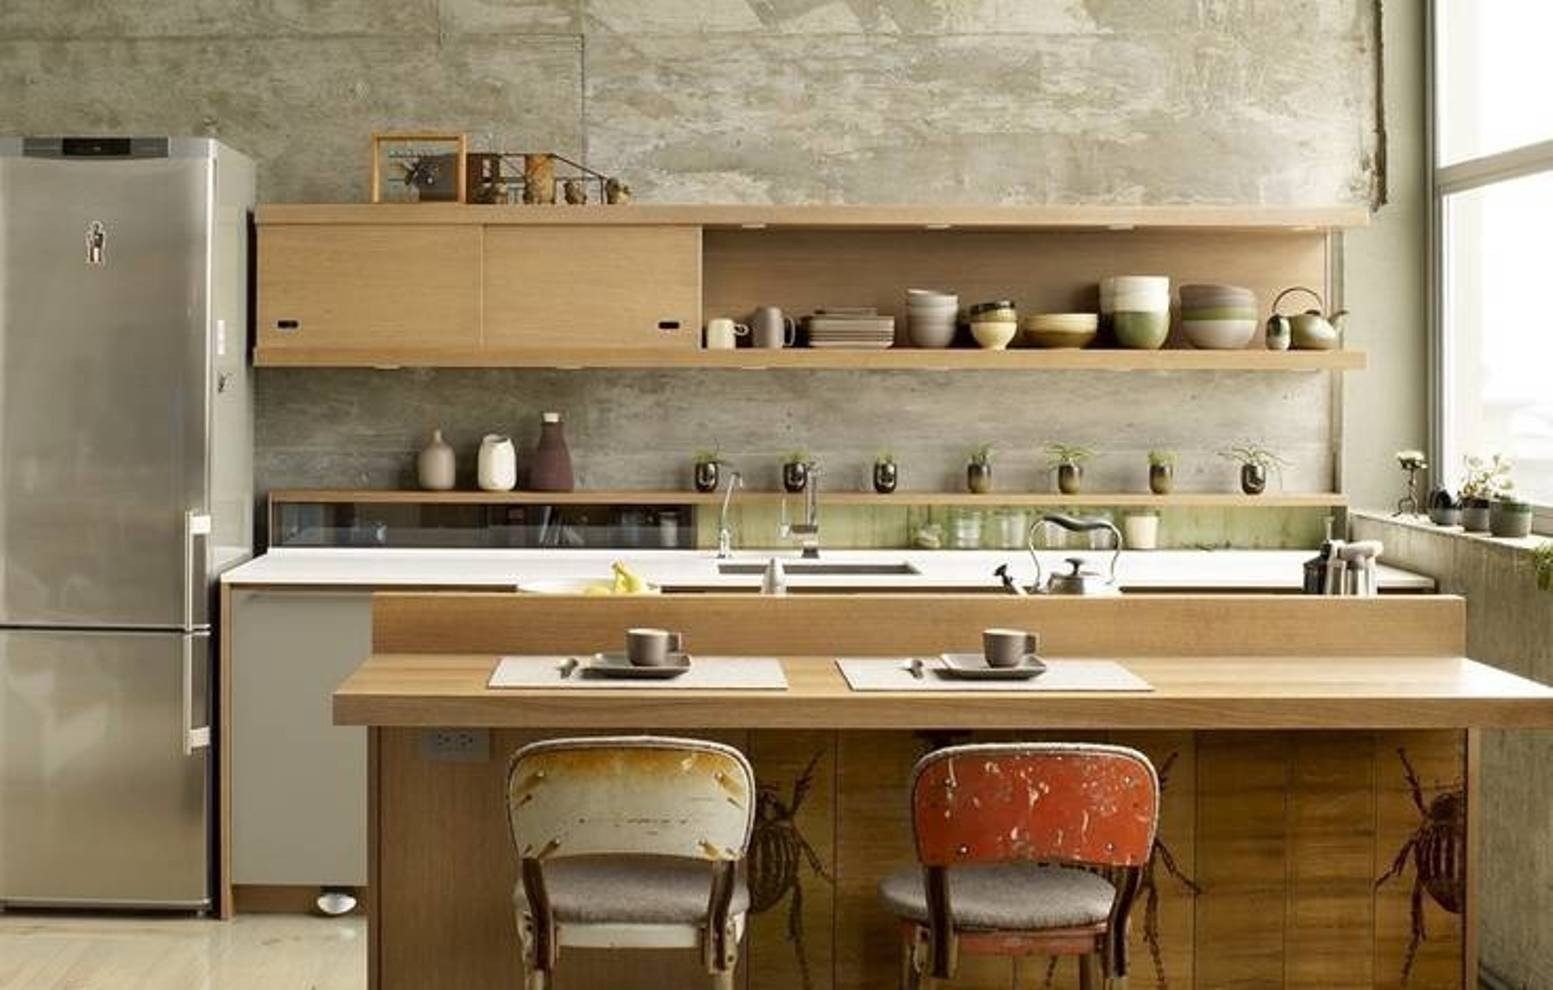 Japanese Design Kitchen Cabinets